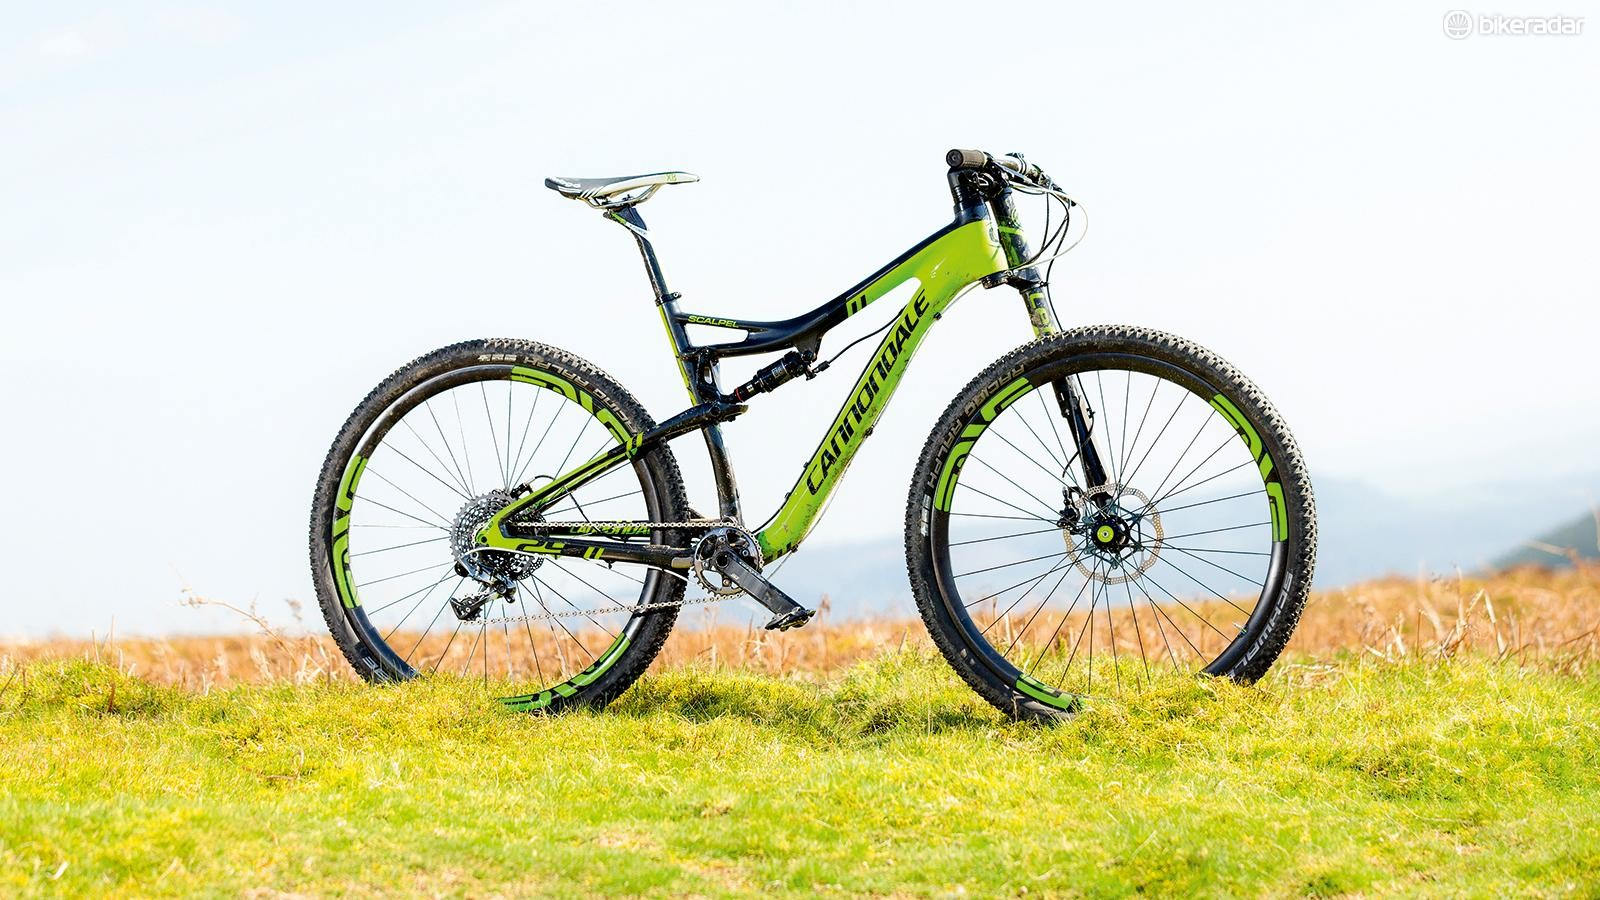 The Scalpel was one of the first fibre full sus bikes to hit the World Cup circuit, with unique Lefty fork and Cannondale kit